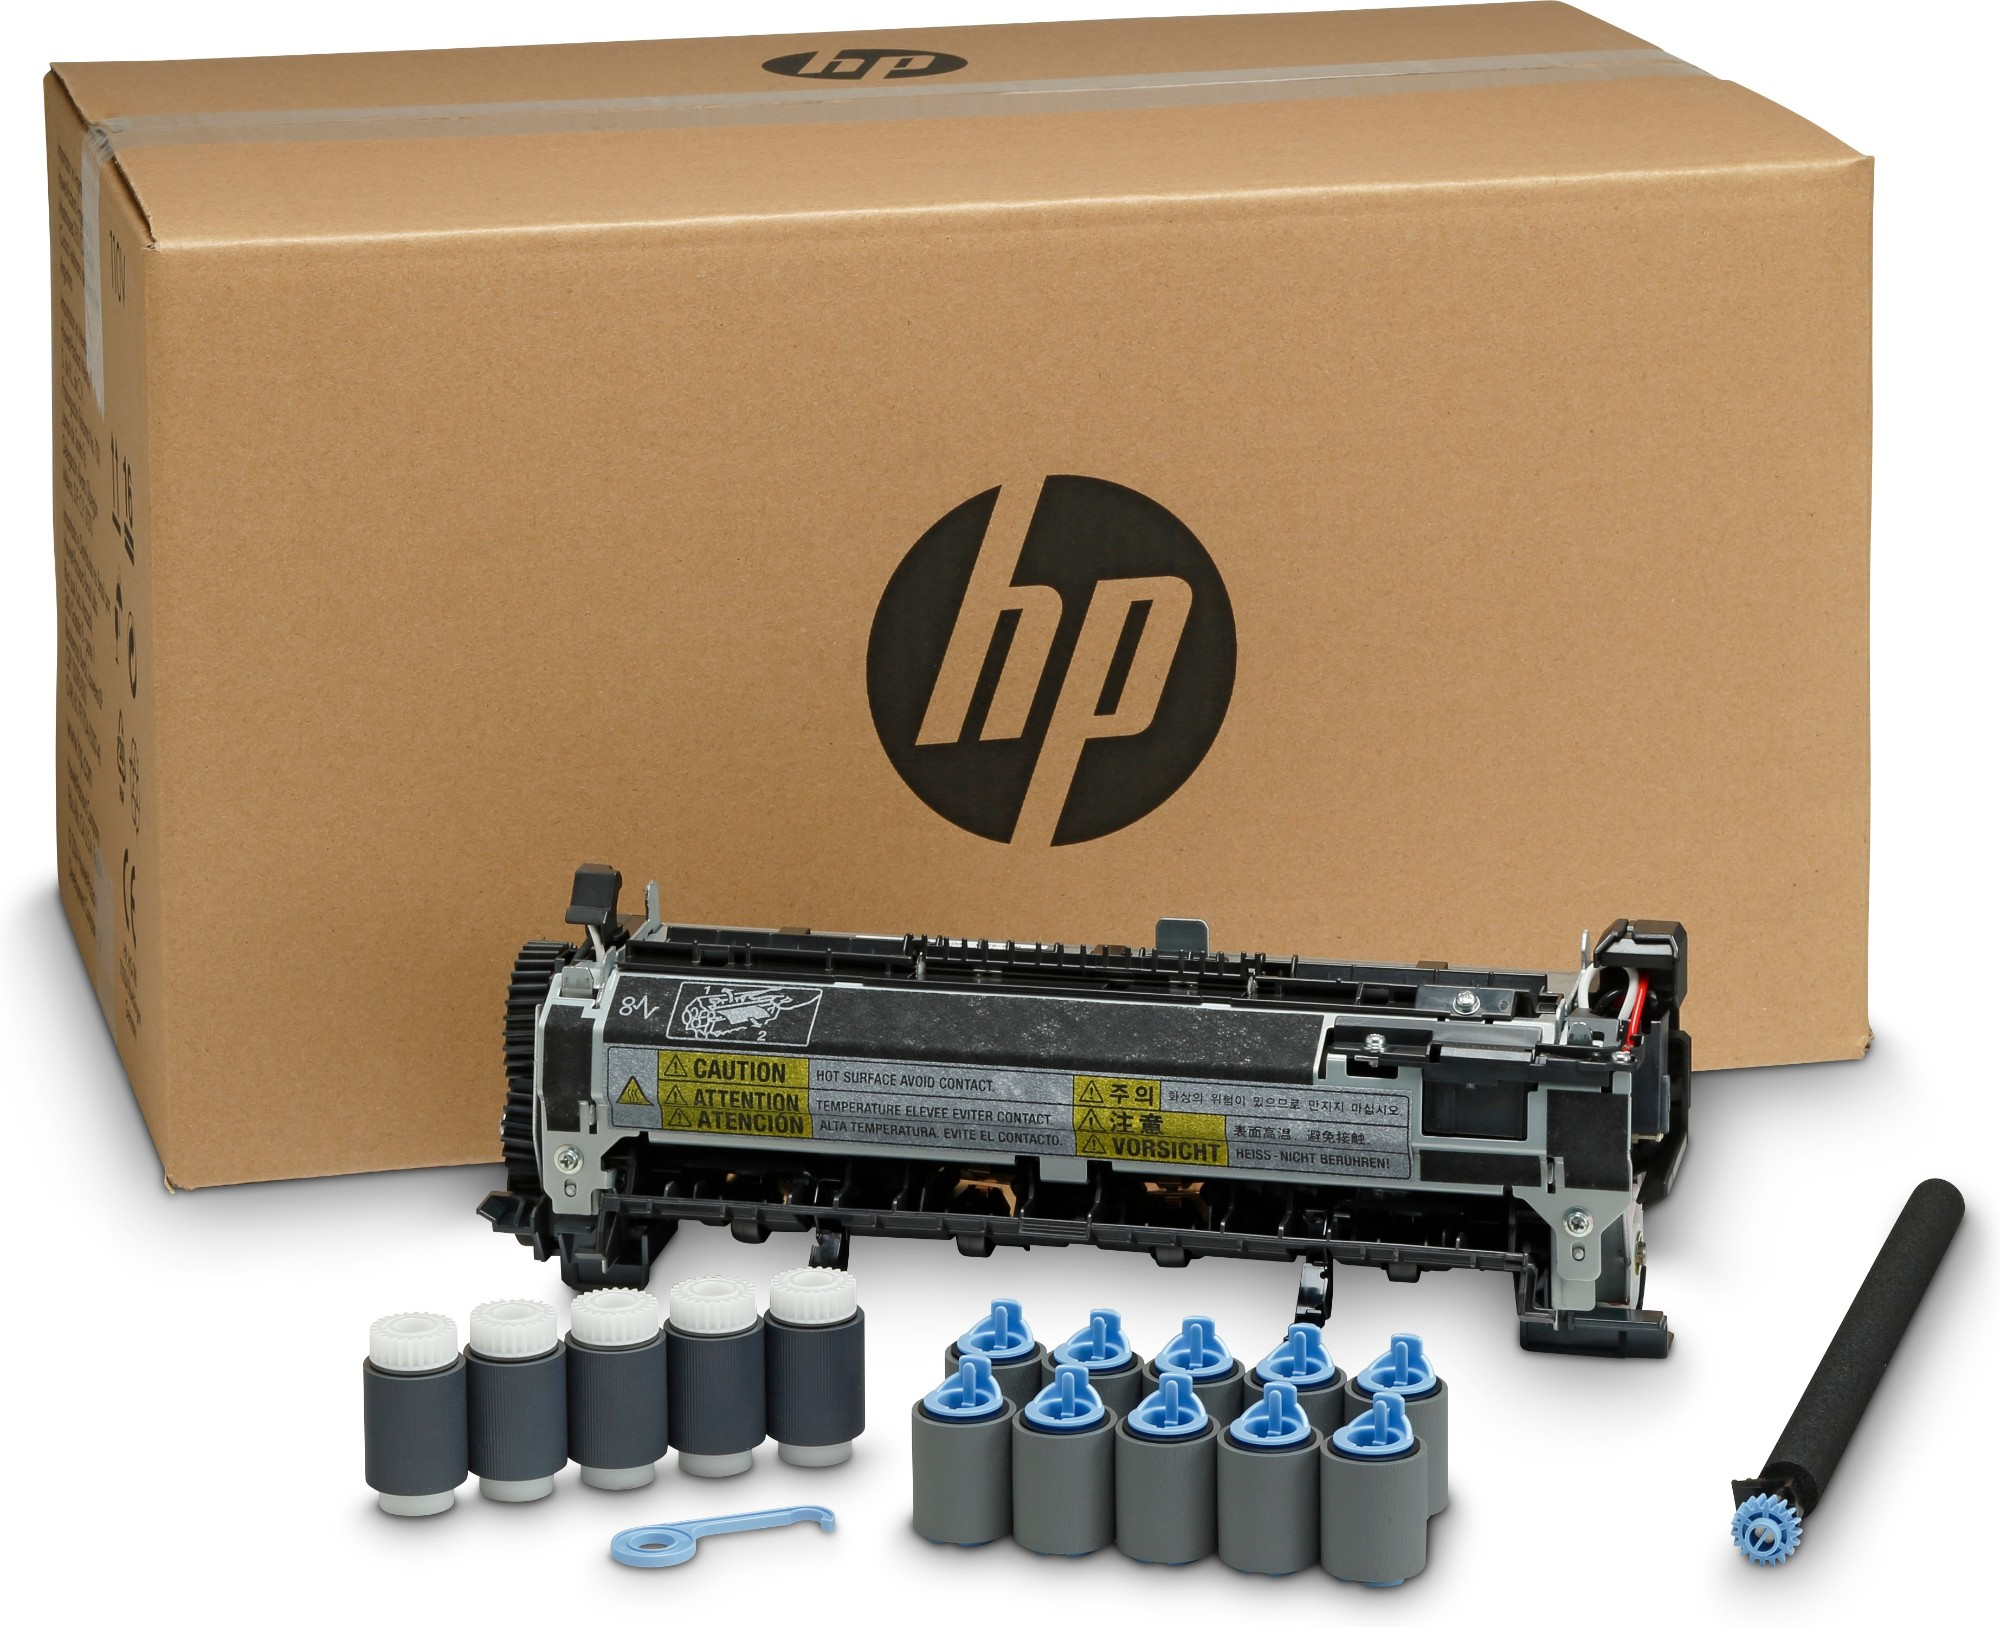 HP F2G77A Service-Kit, 225K pages